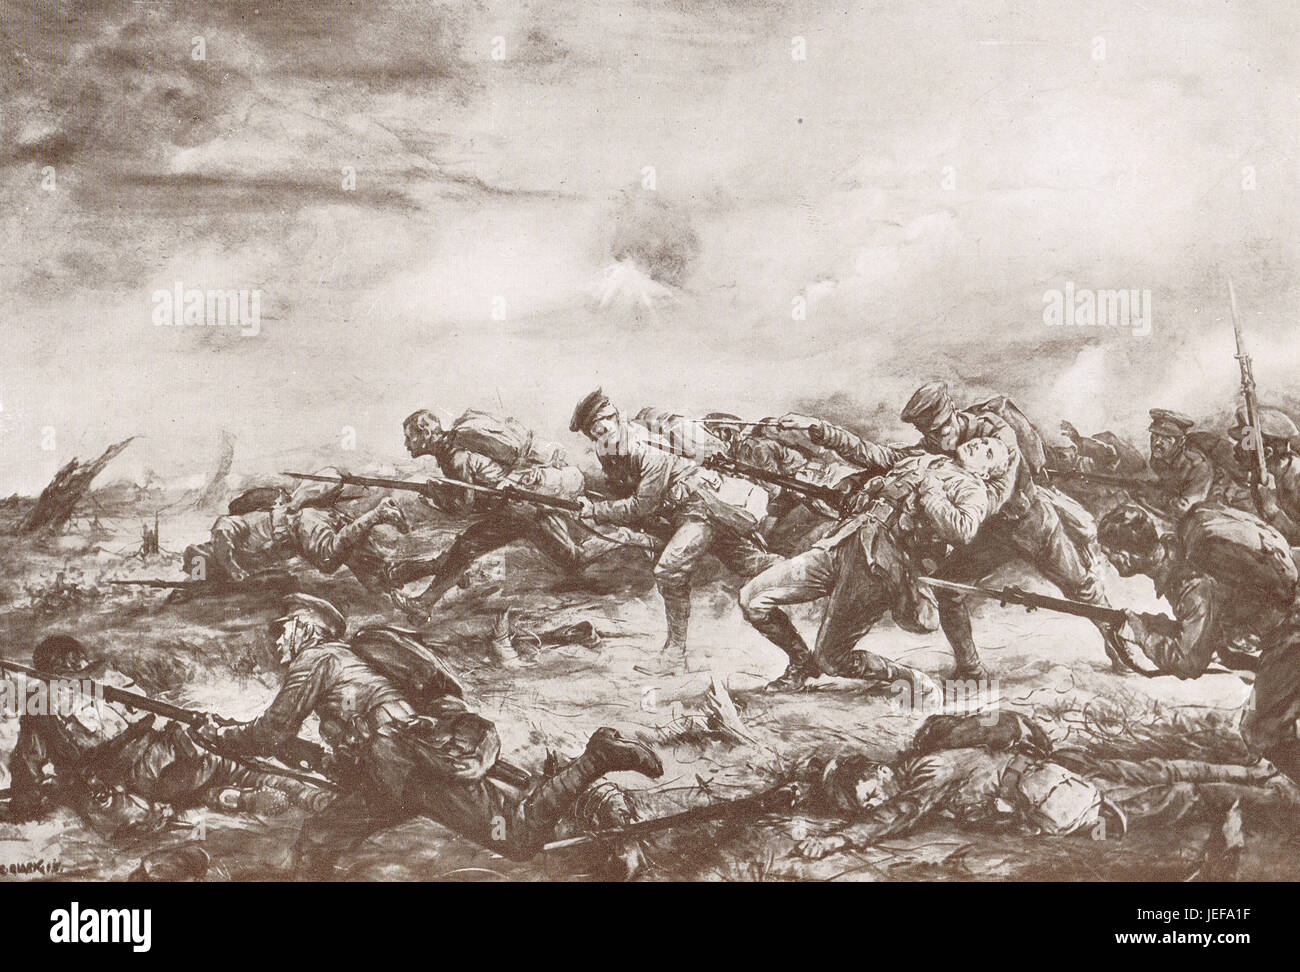 Canadian Charge 2nd battle of Ypres 1915 - Stock Image